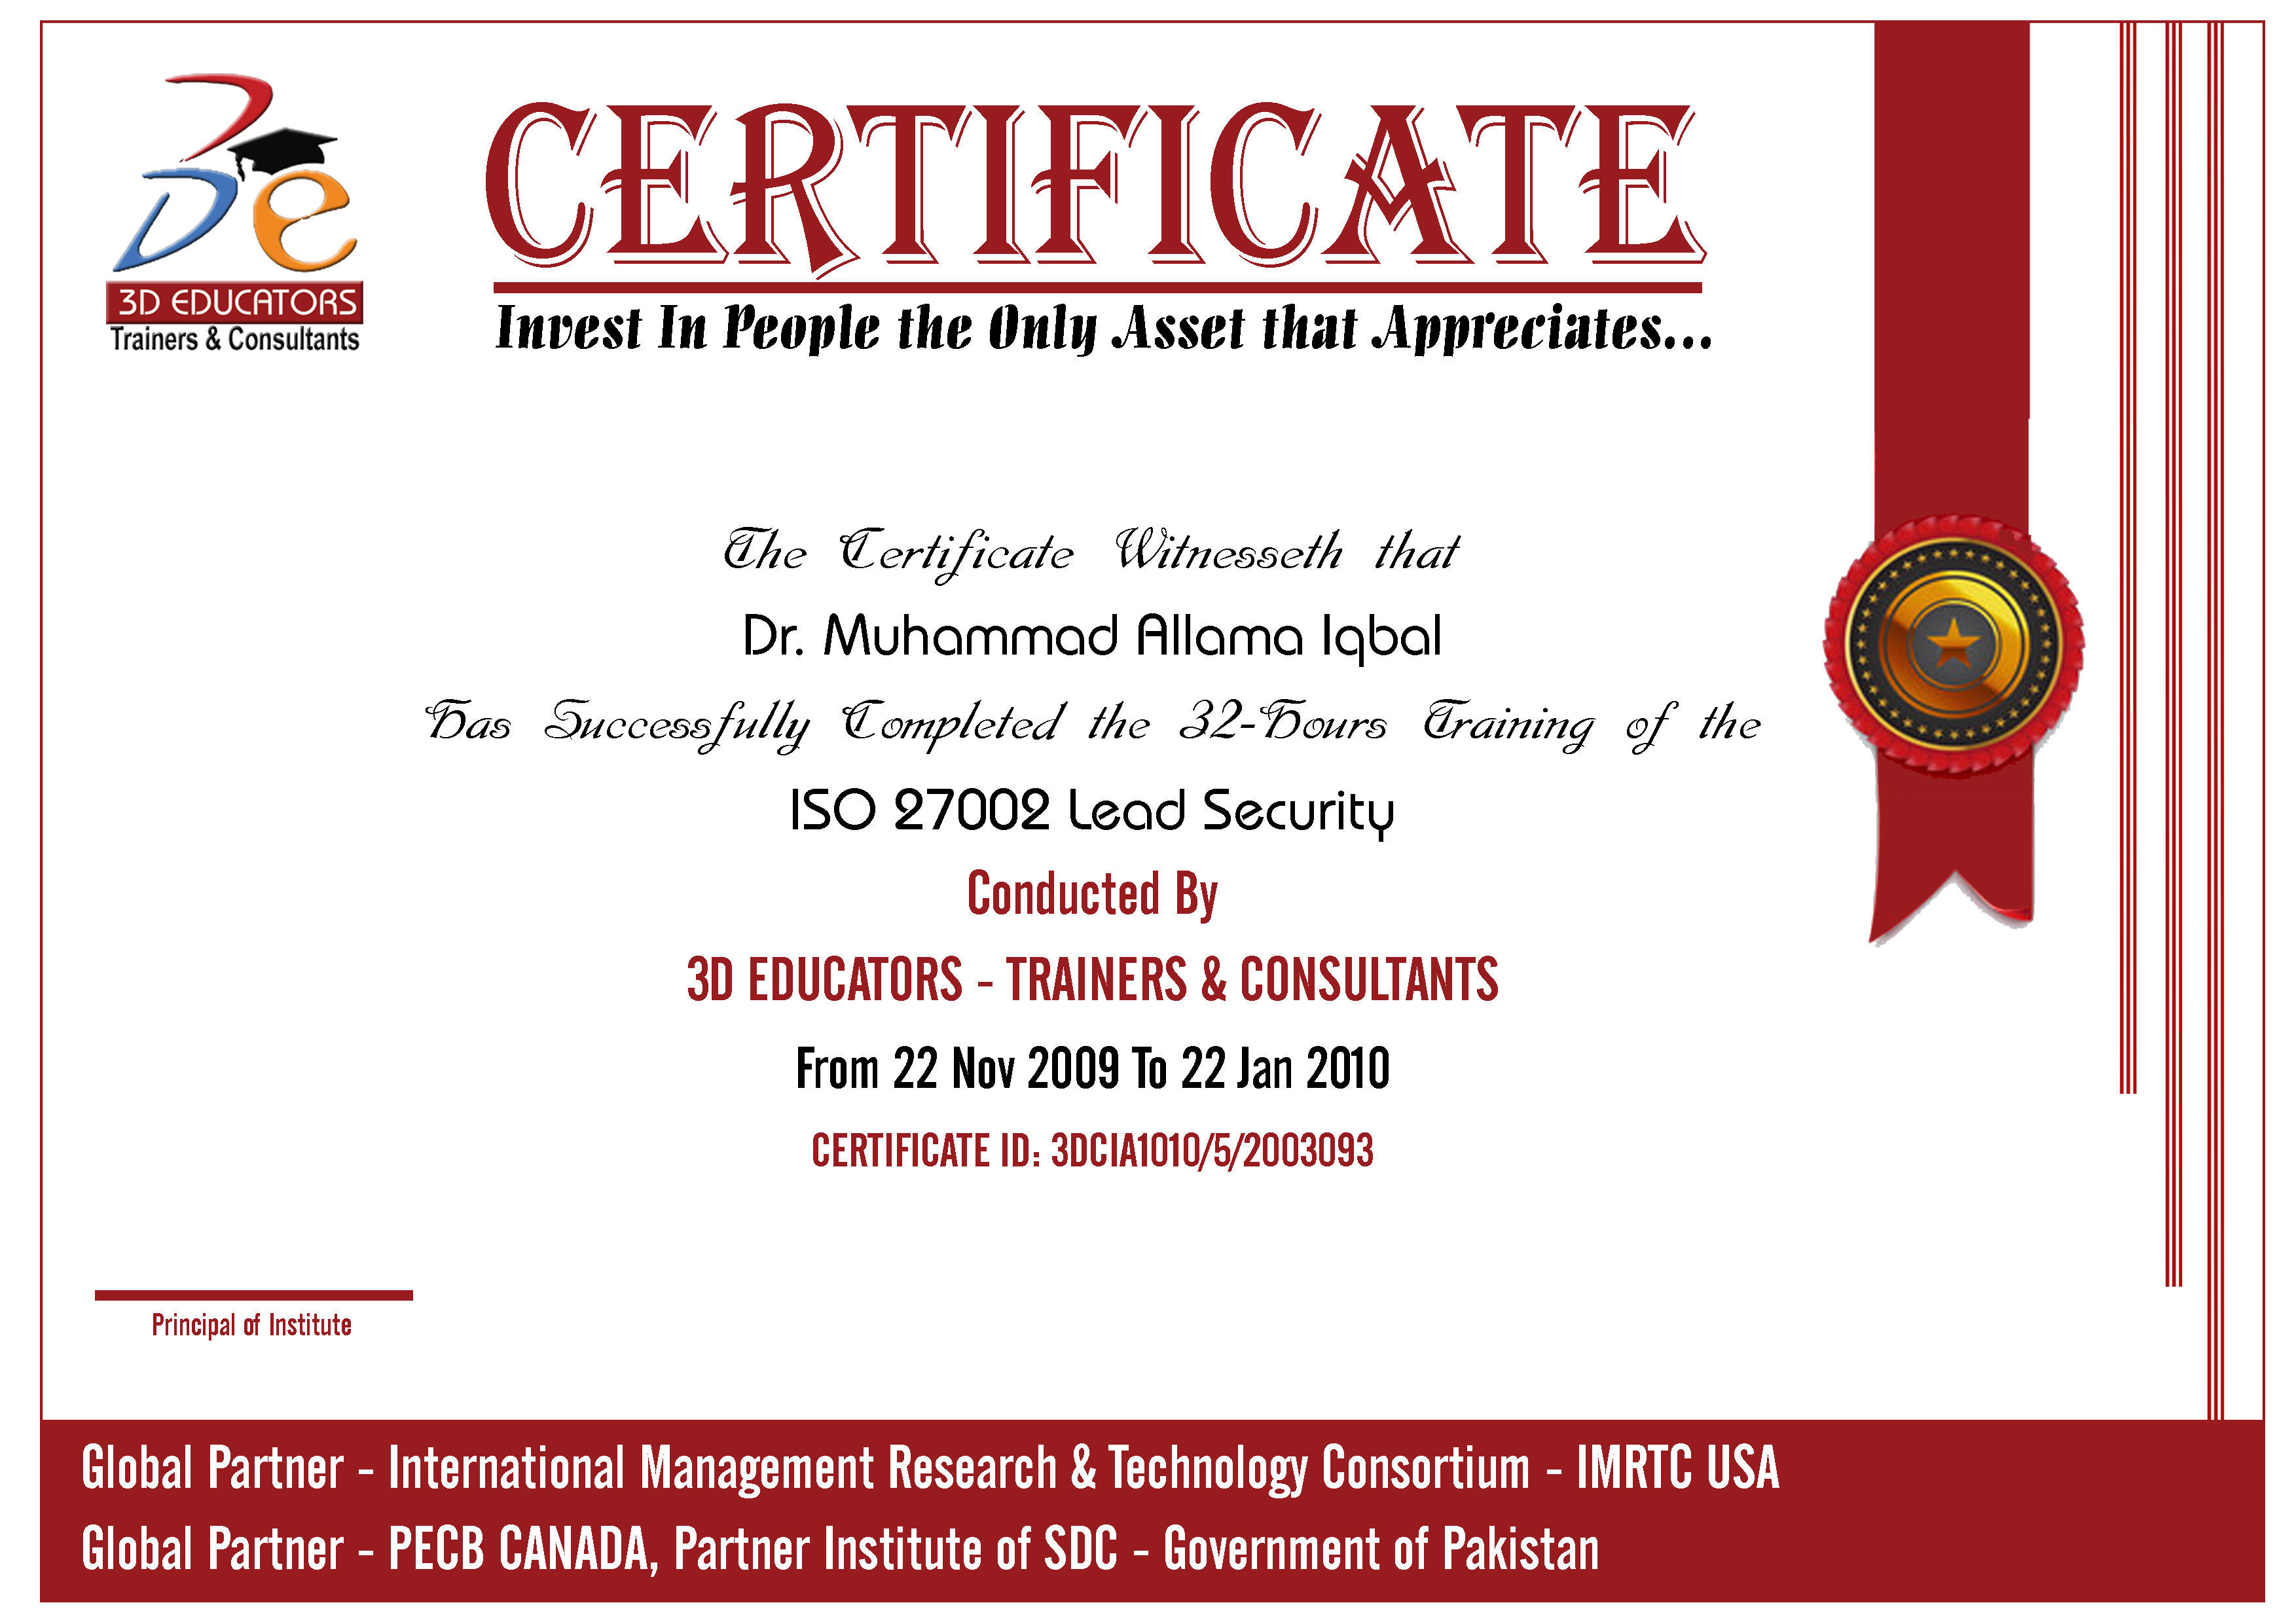 ISO 27002 Lead Security Training Sample Certificate